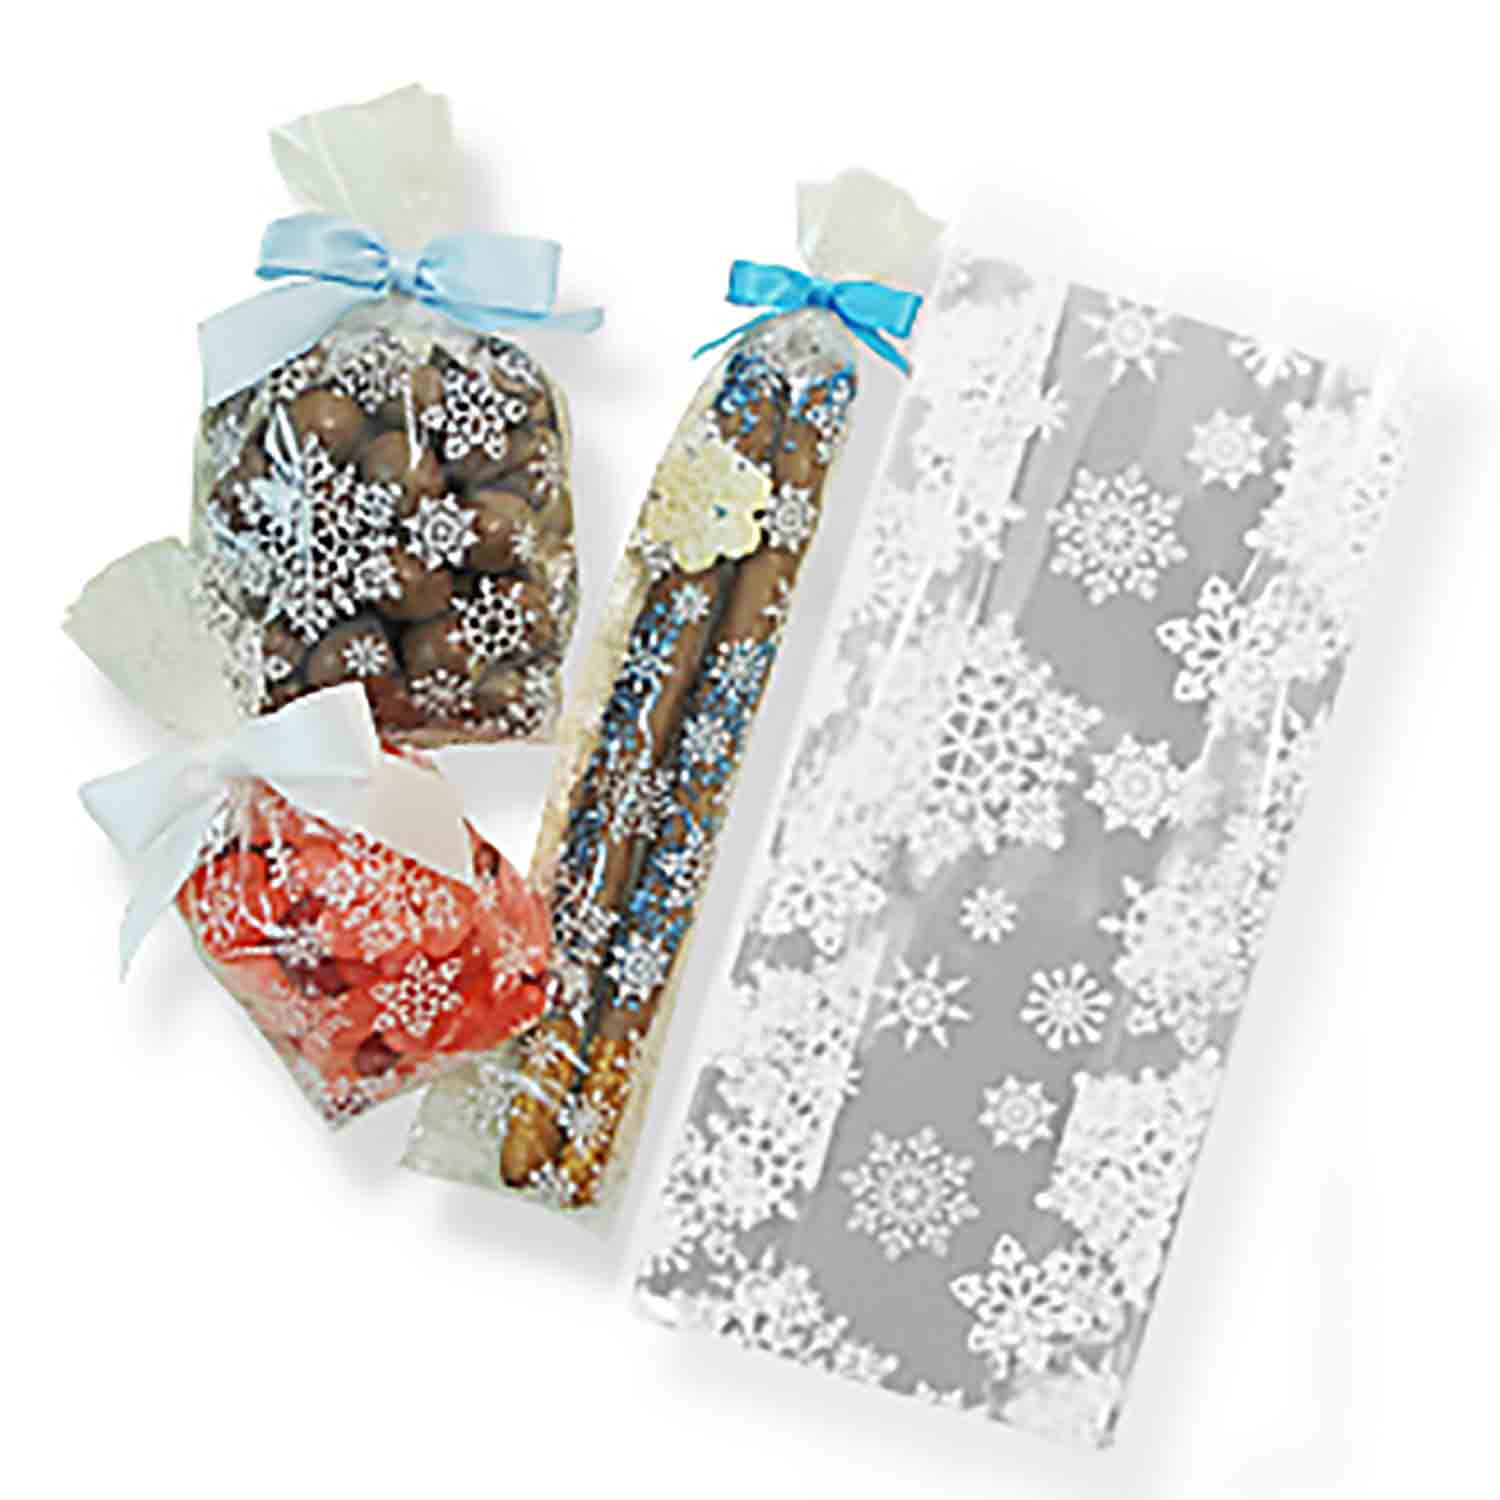 "3 1/2"" x 2 1/4"" x 8 1/4"" Snowflake Cellophane Bag"